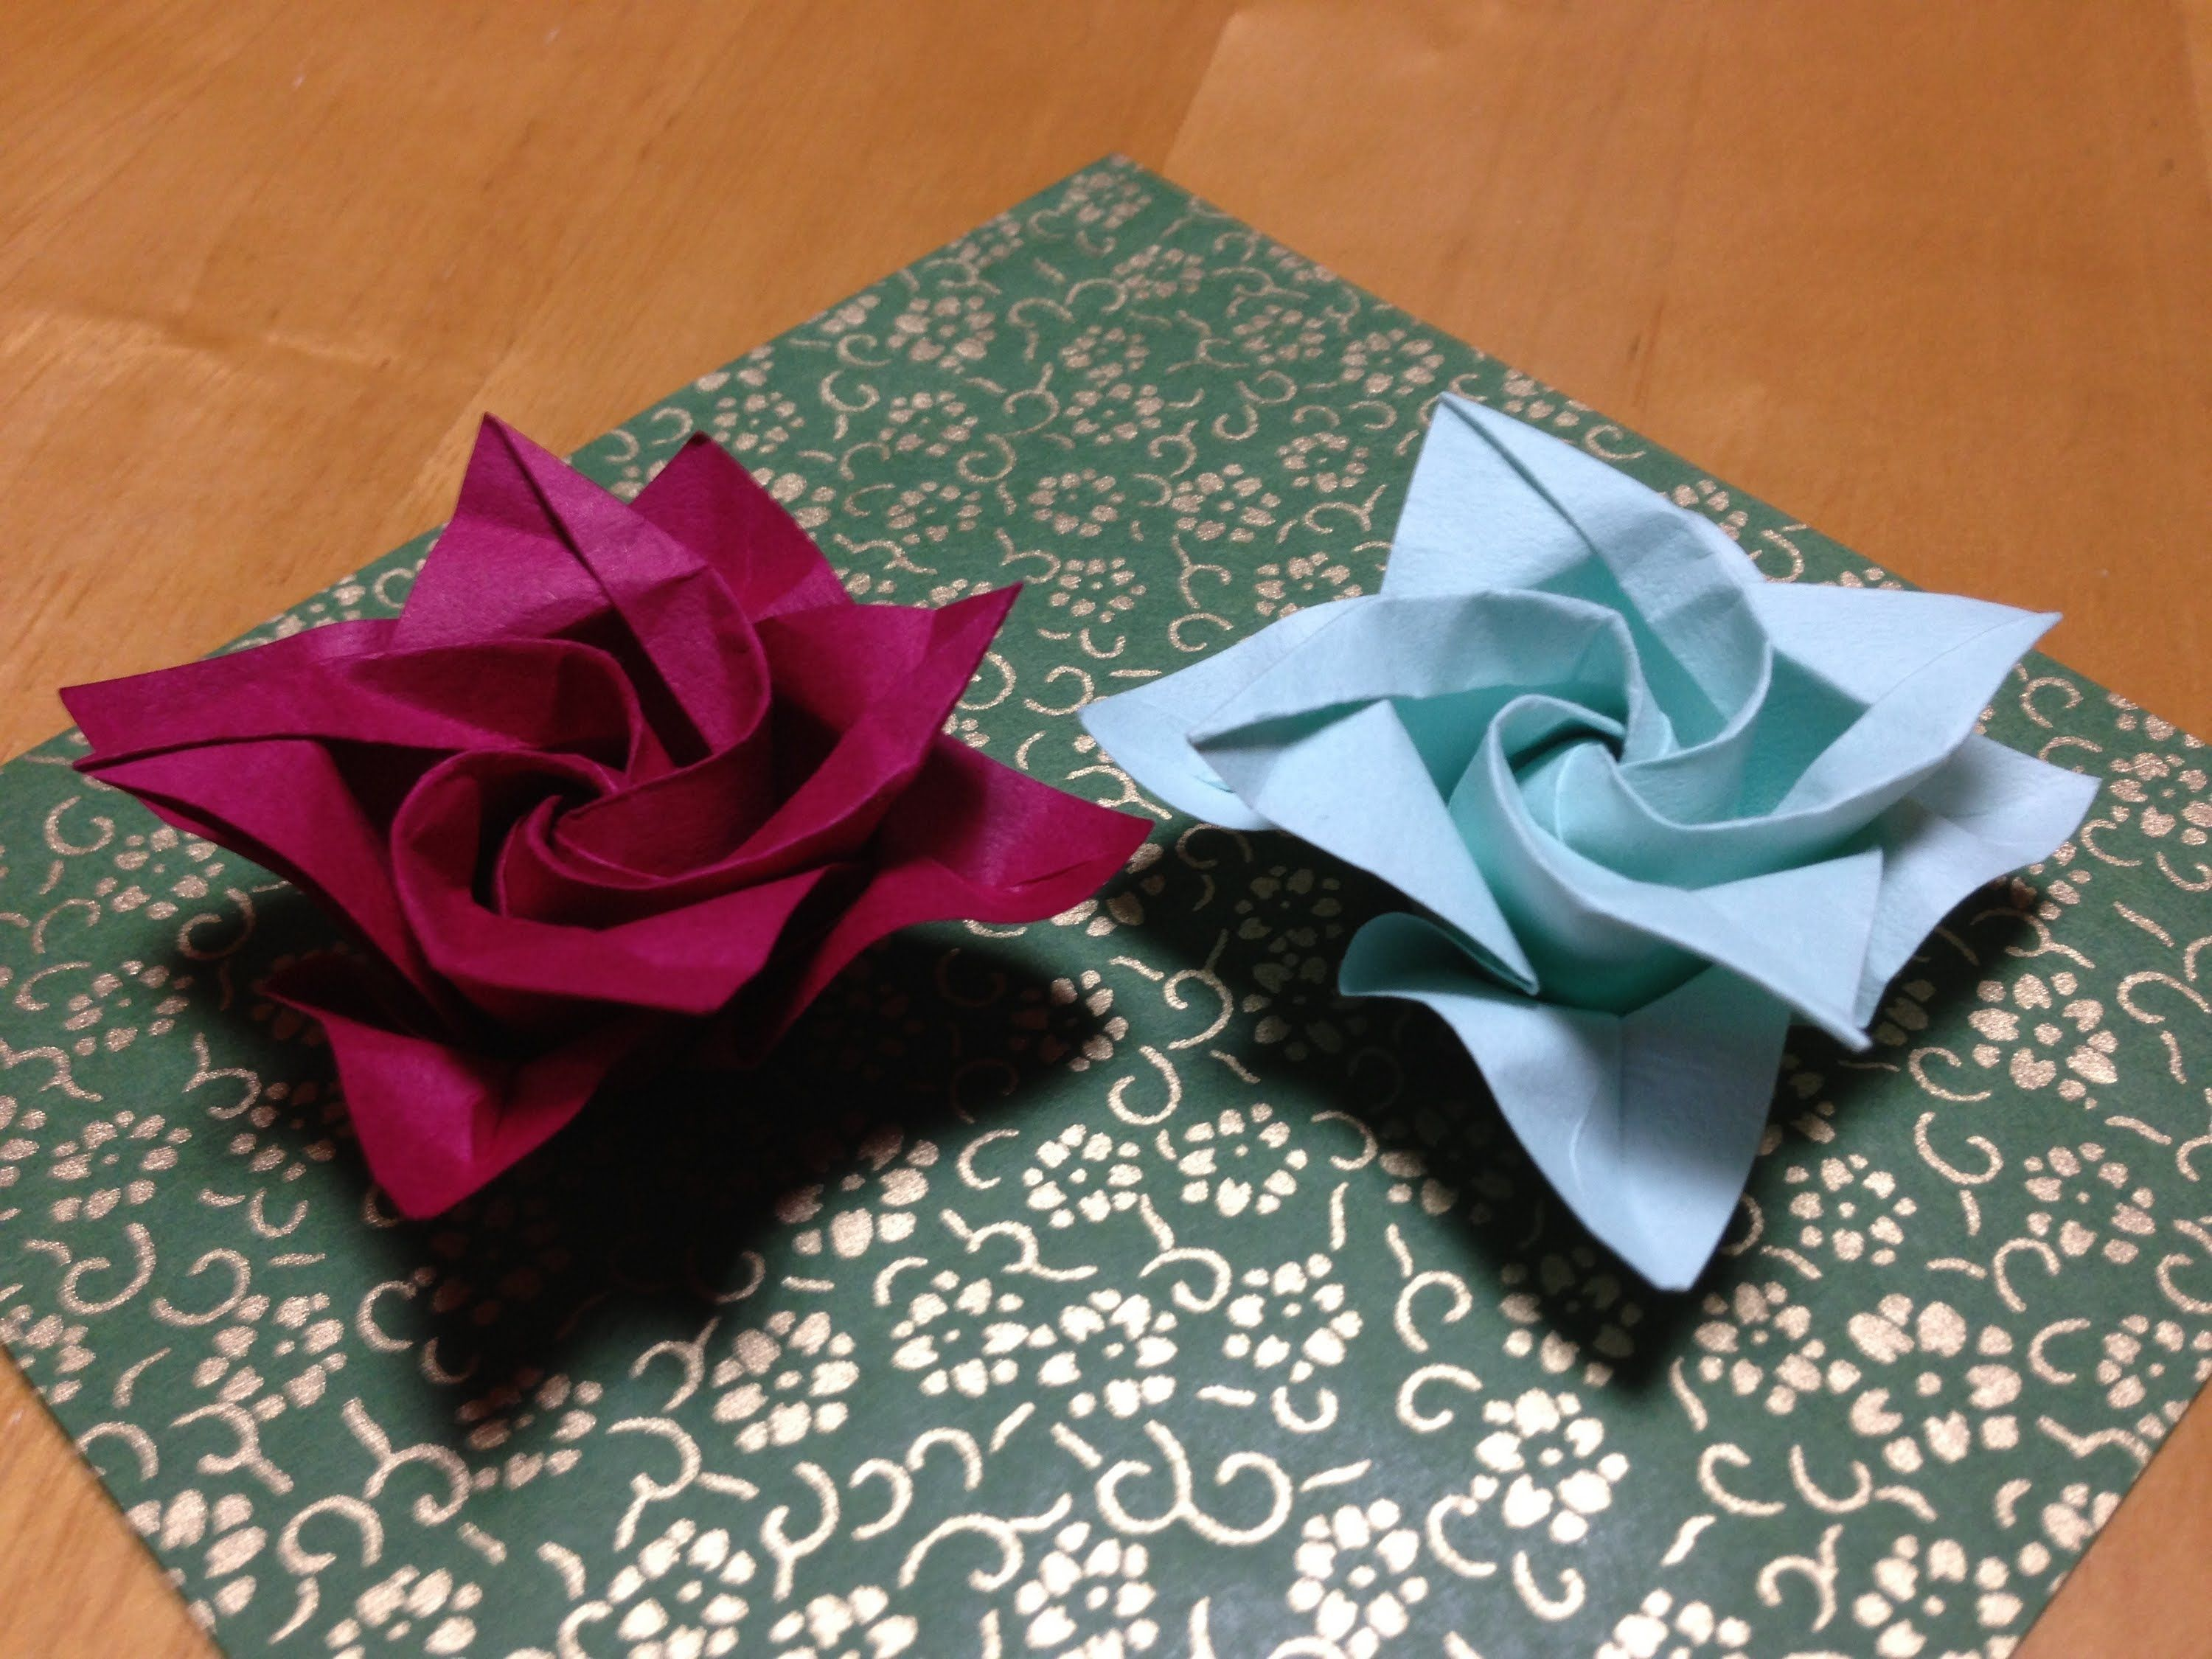 05 Double Helix Origami Rose 05 Origammi